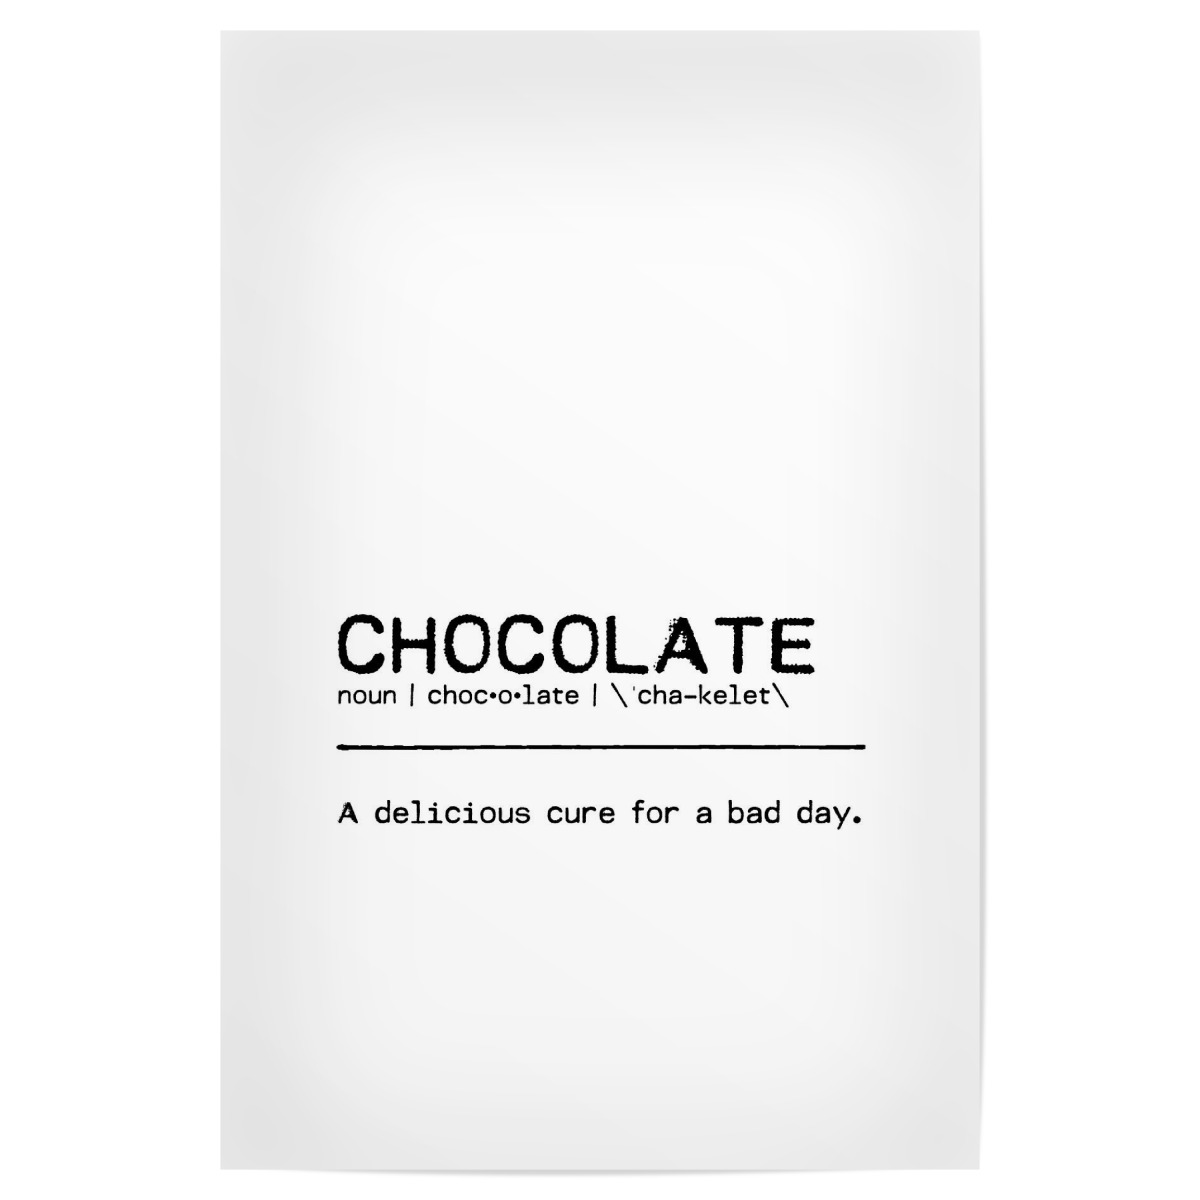 Purchase the Chocolate Quote as a Poster at artboxONE